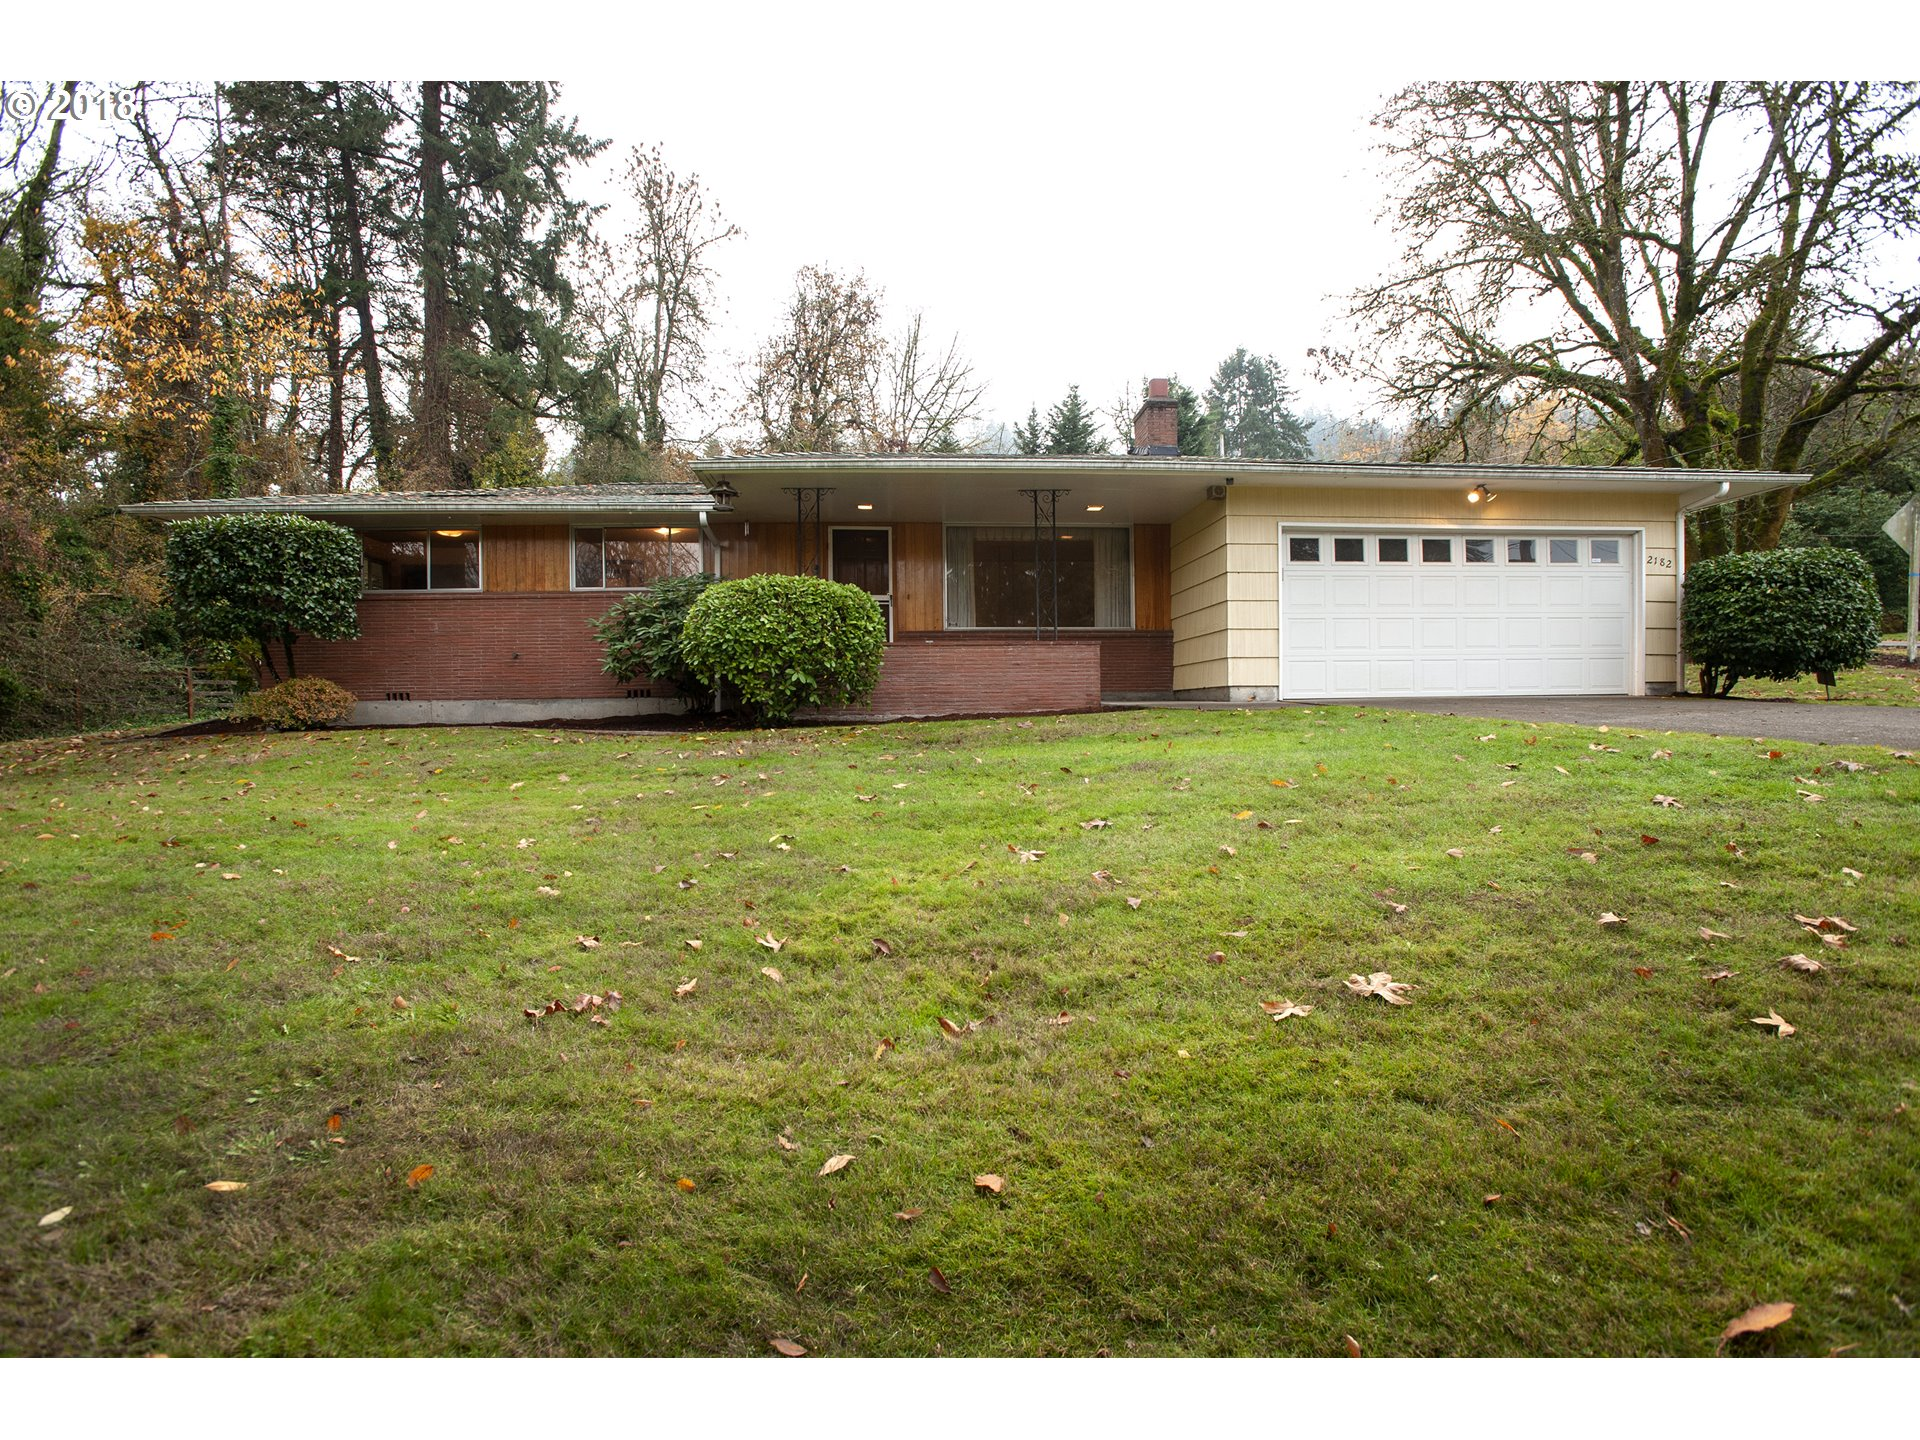 2182 GLENMORRIE DR Lake Oswego, OR 97034 - MLS #: 18199088